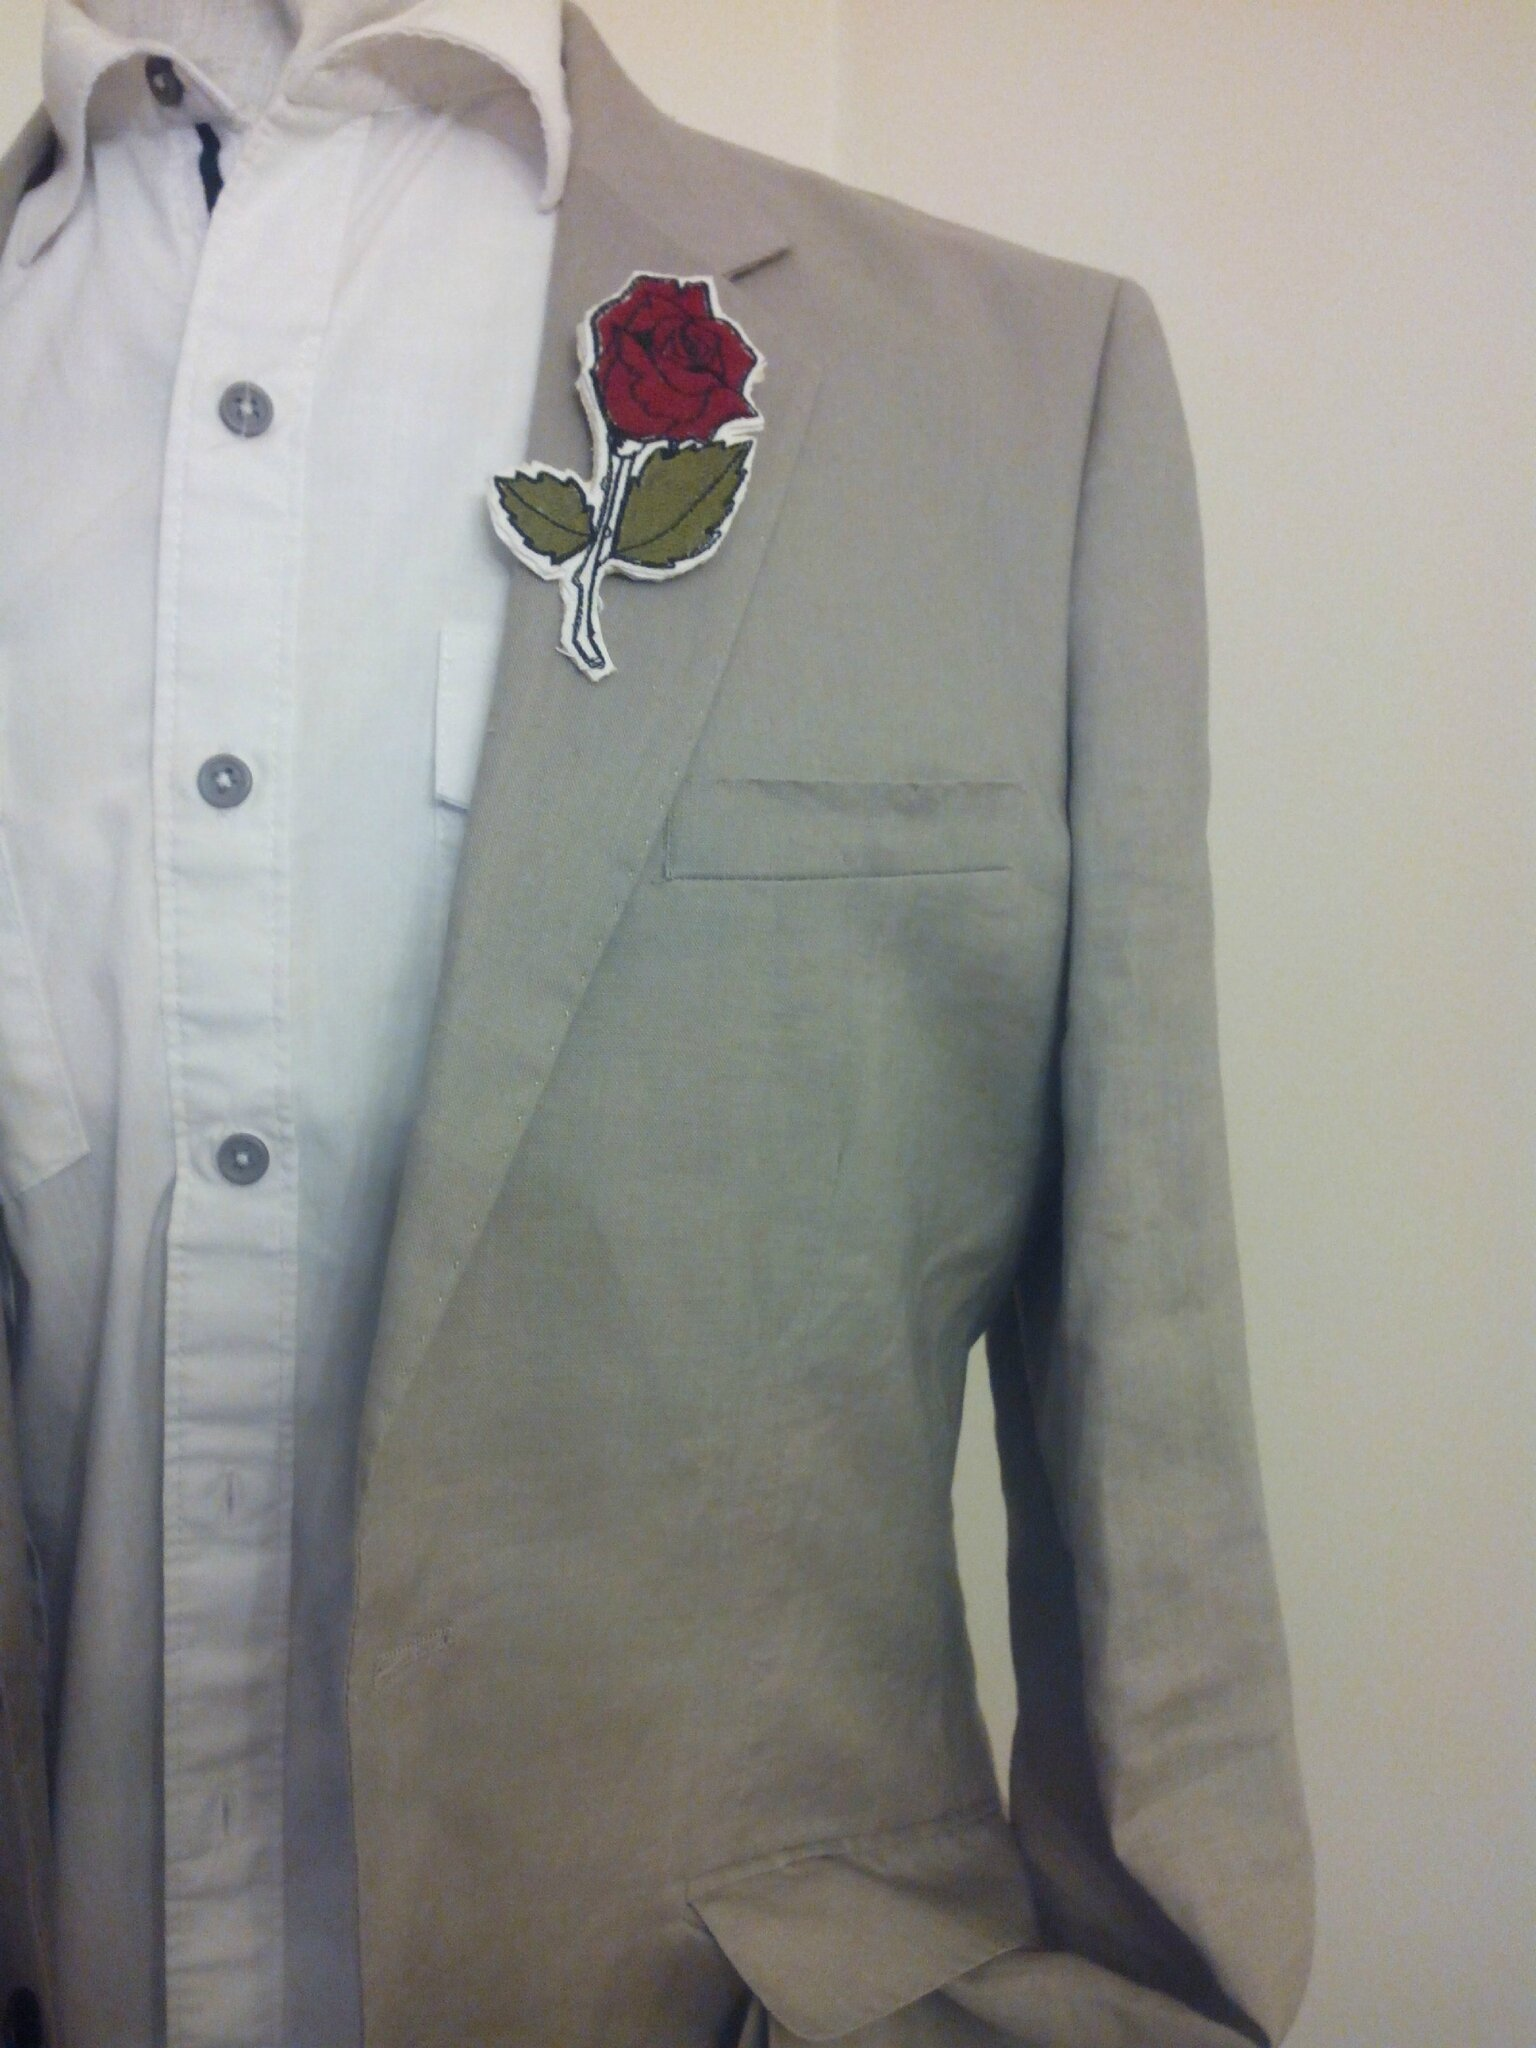 BOUTONNIERE ROSE BRODEE URBAN STYLE CARTOON AMD A COUDRE (6)